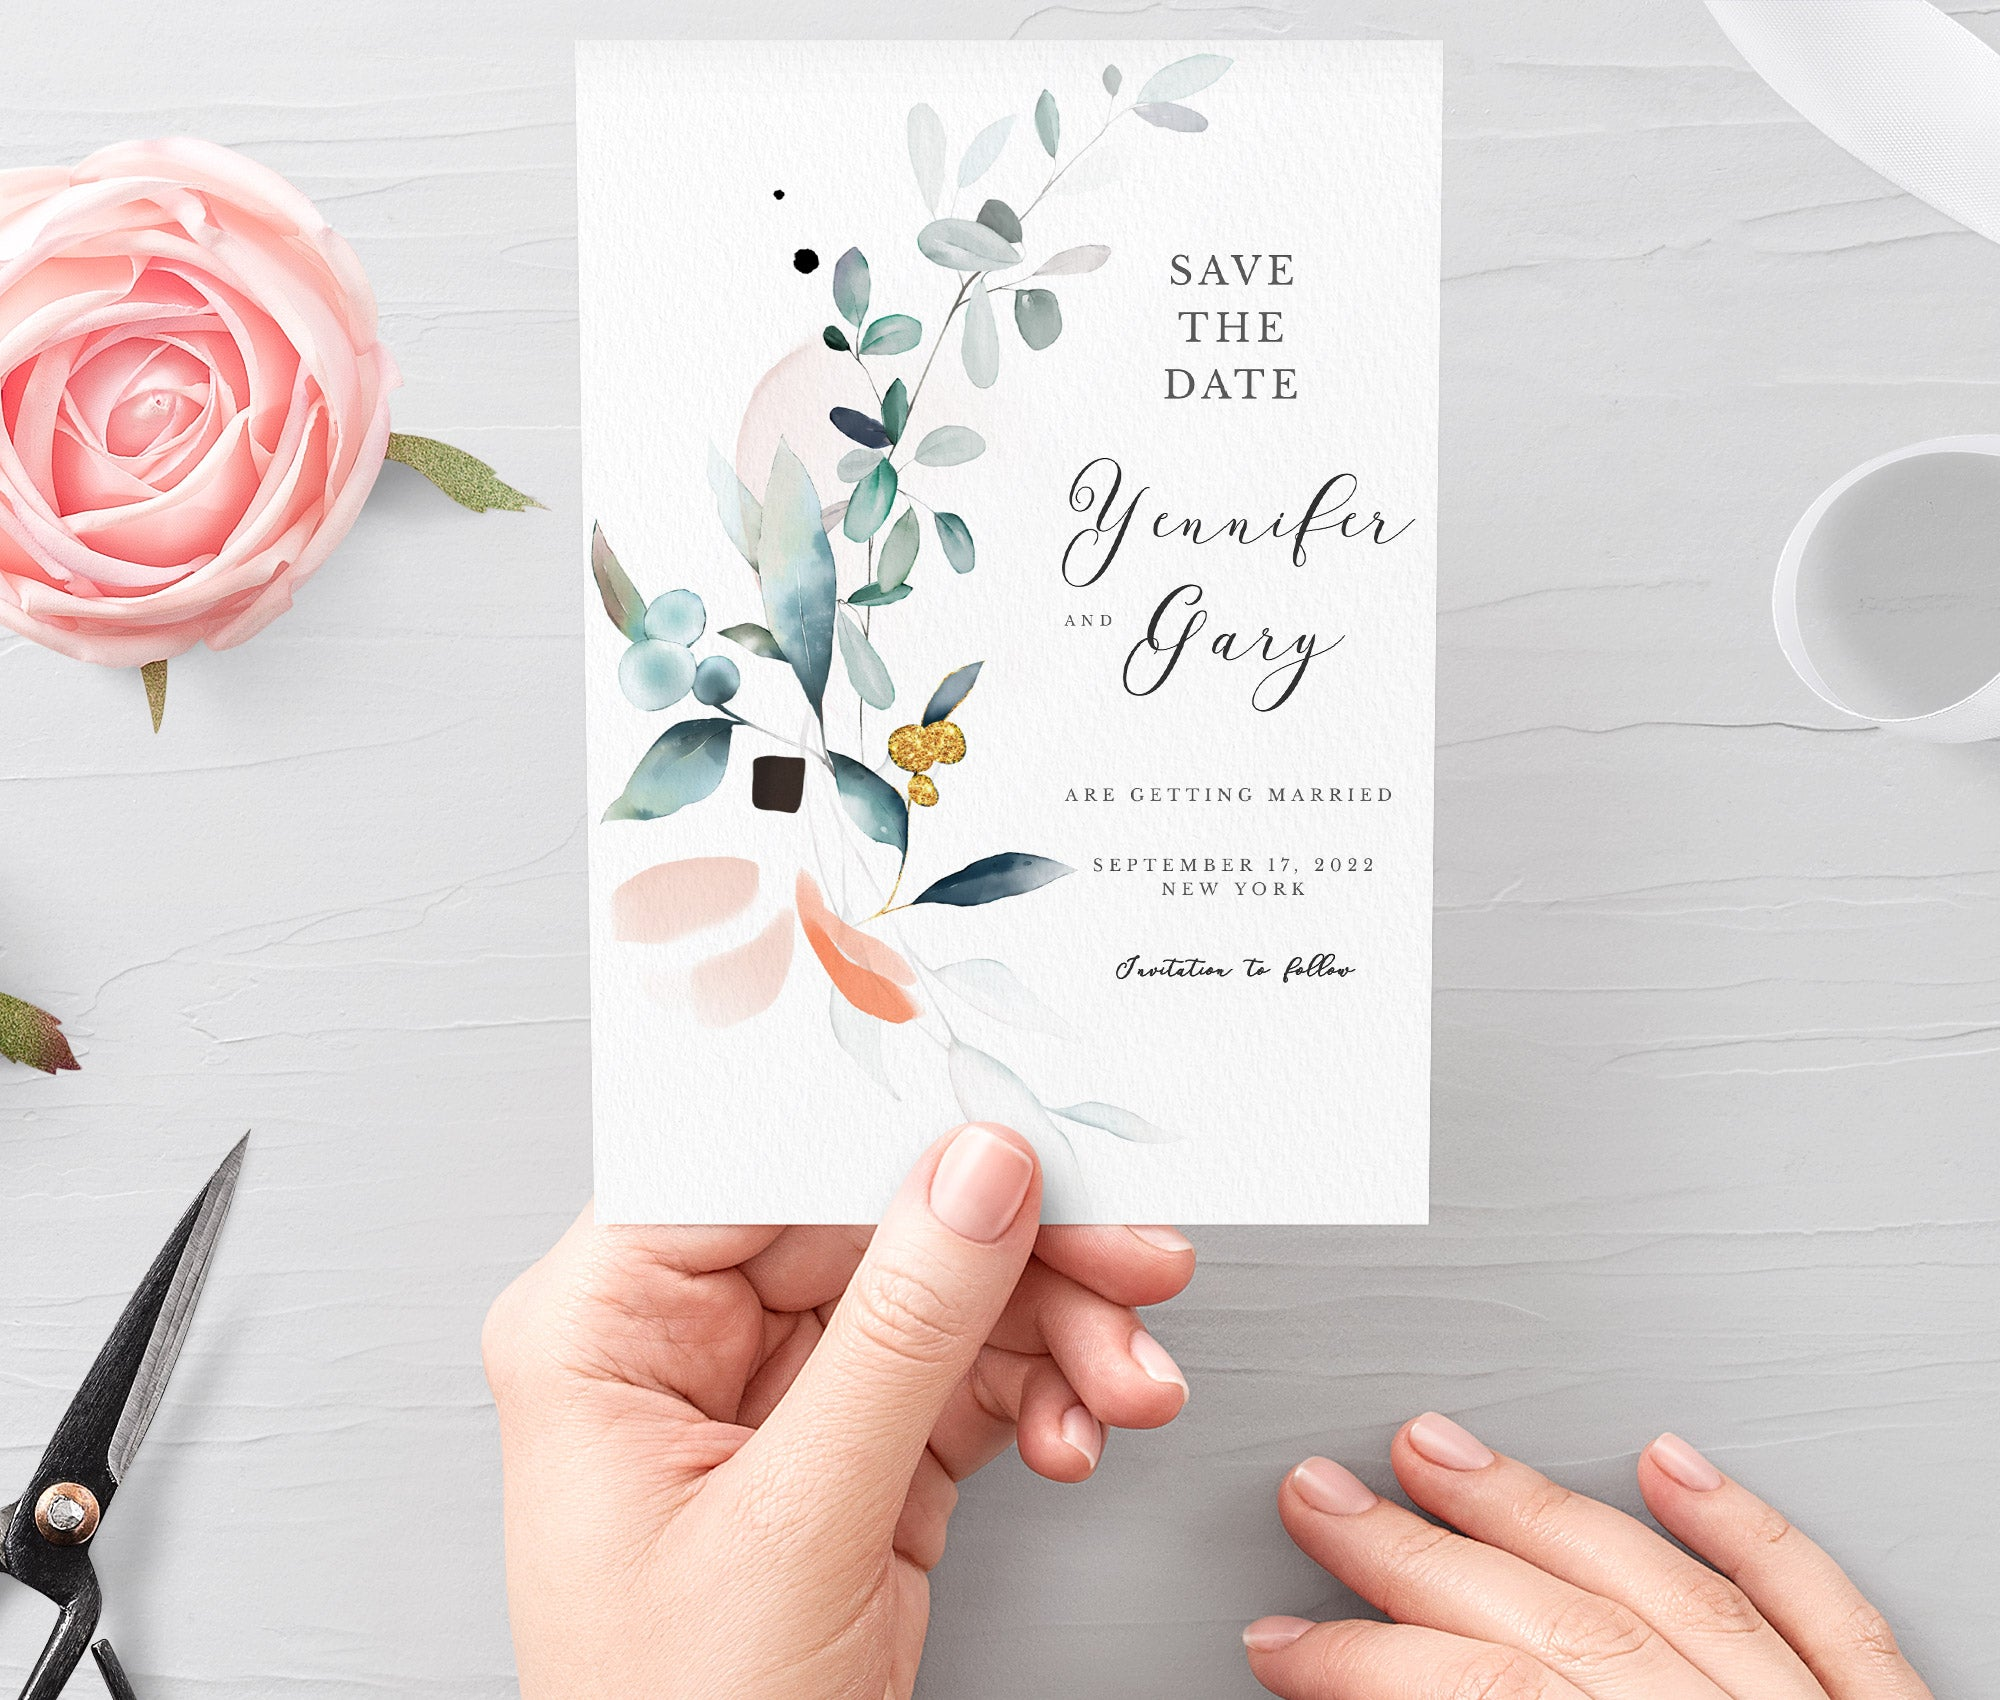 5 Best Wedding Invitations Ideas to Inspire your Own